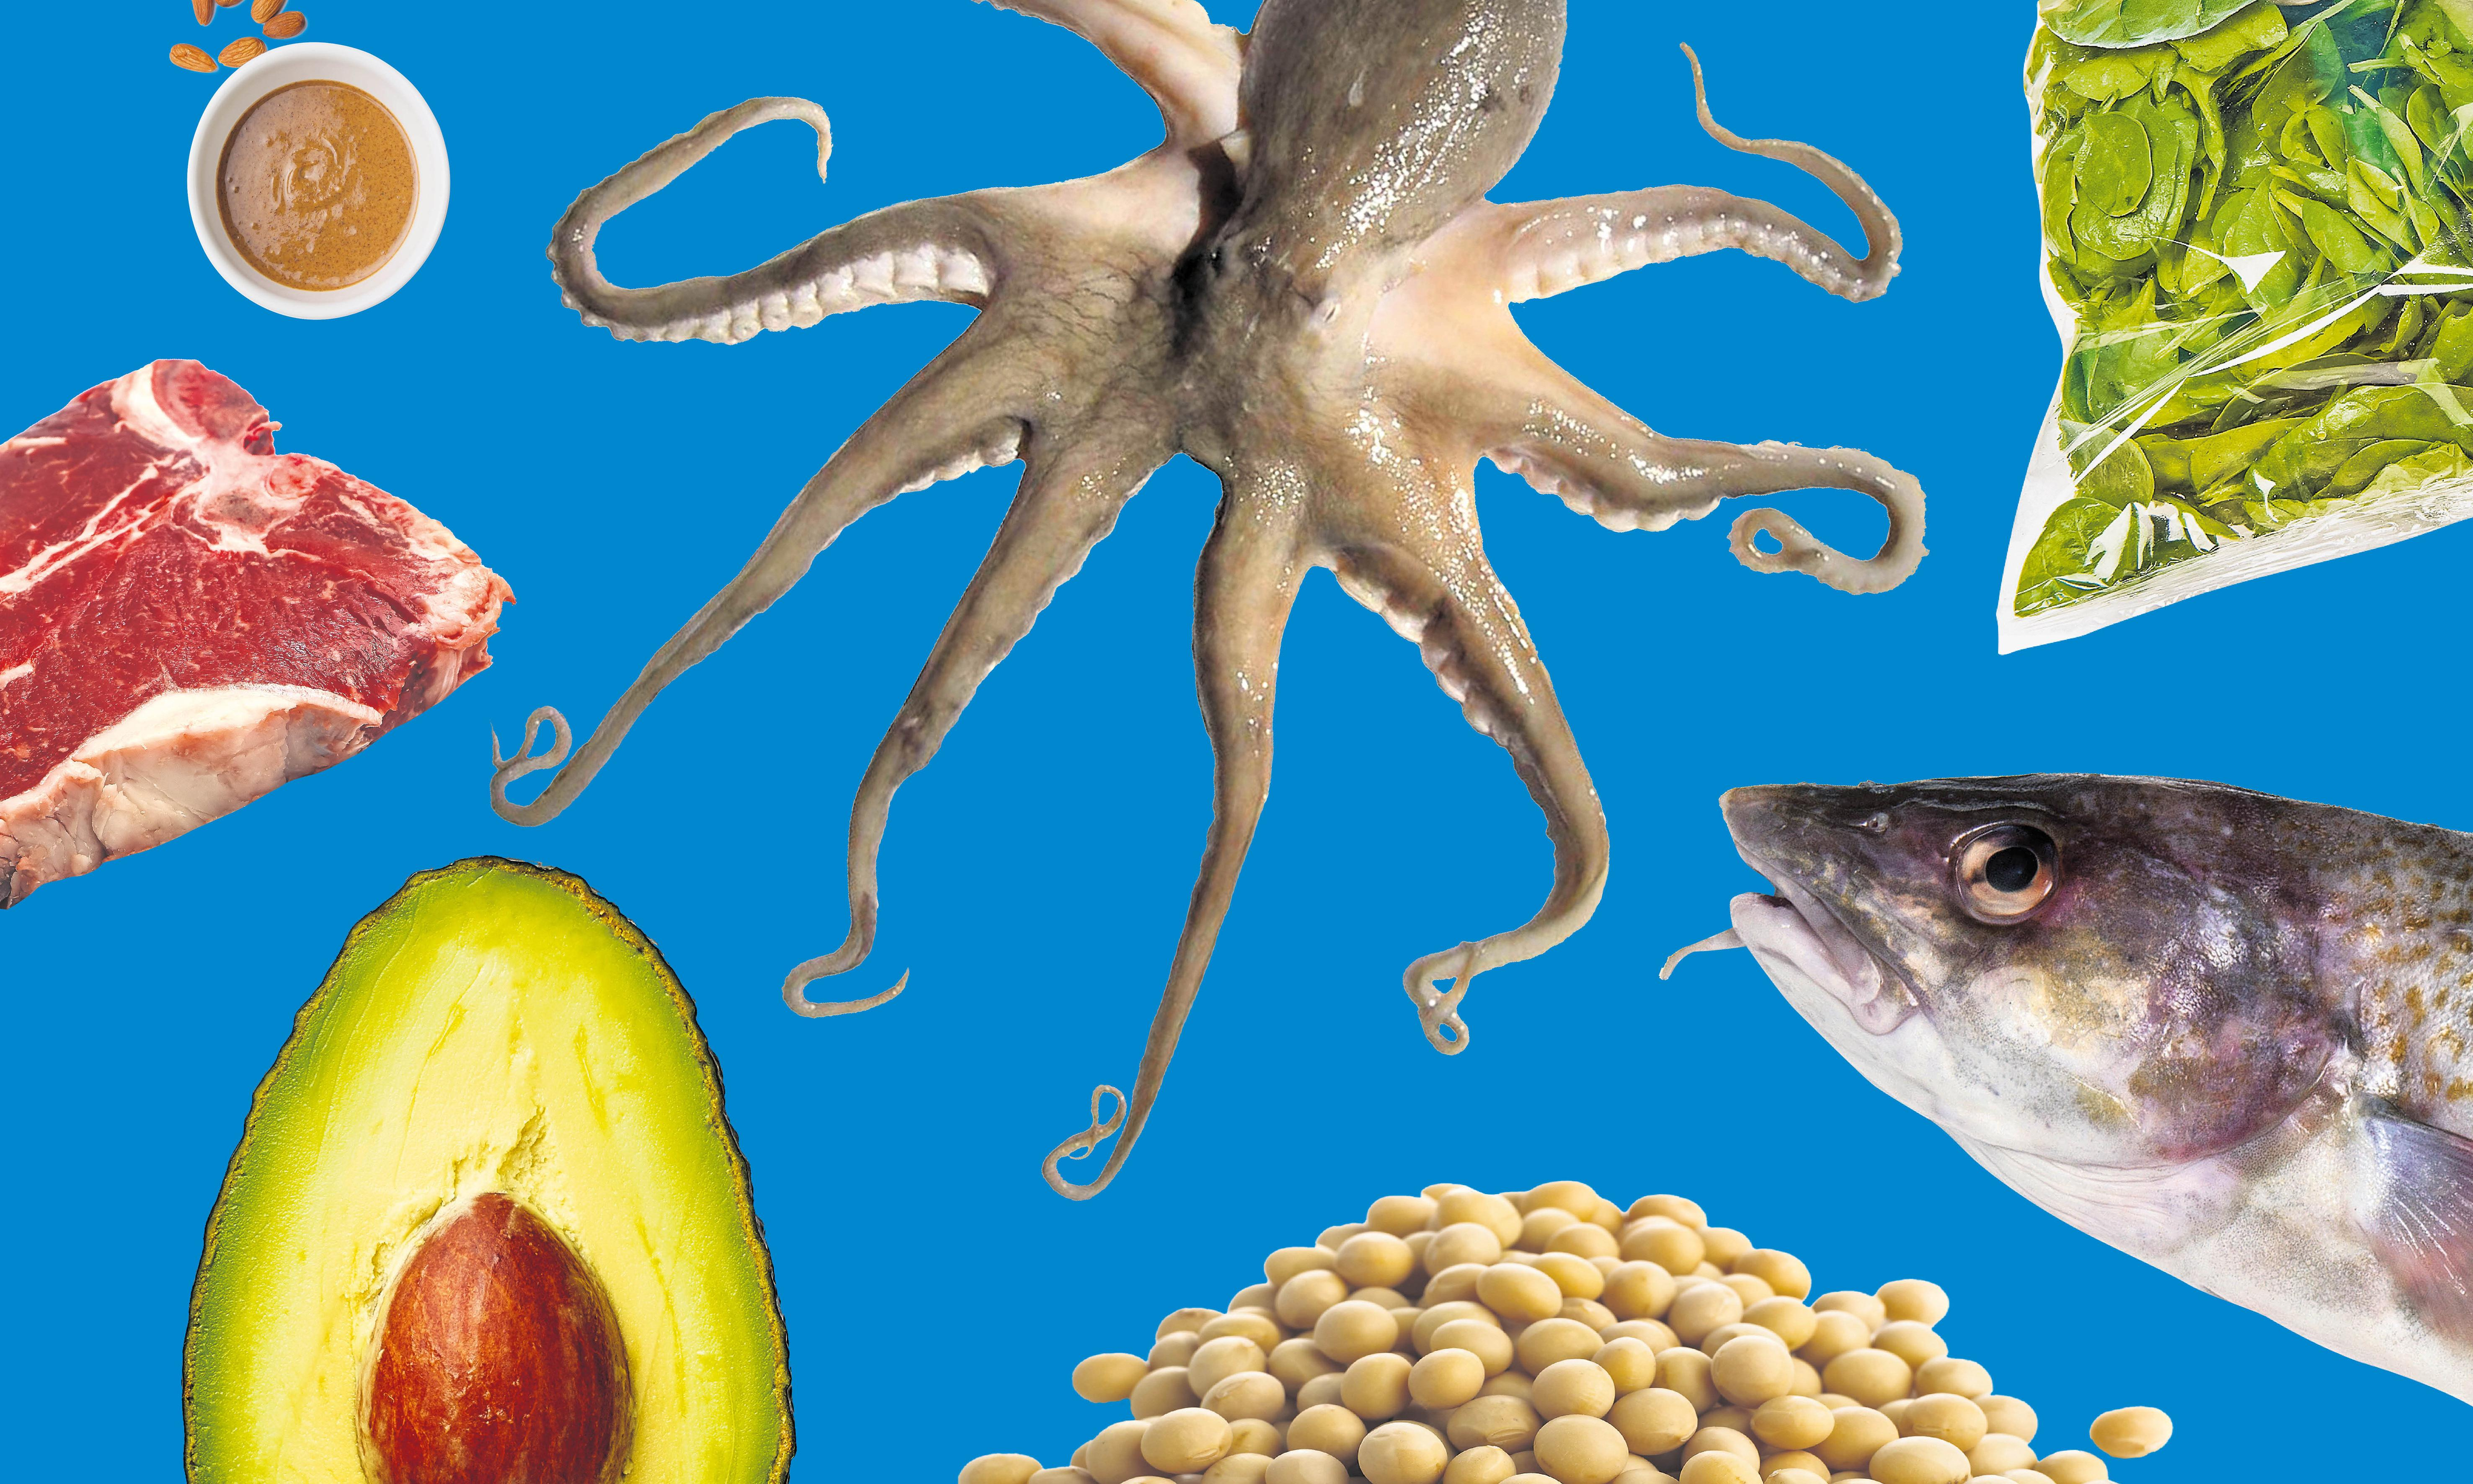 To eat or not to eat: 10 of the world's most controversial foods